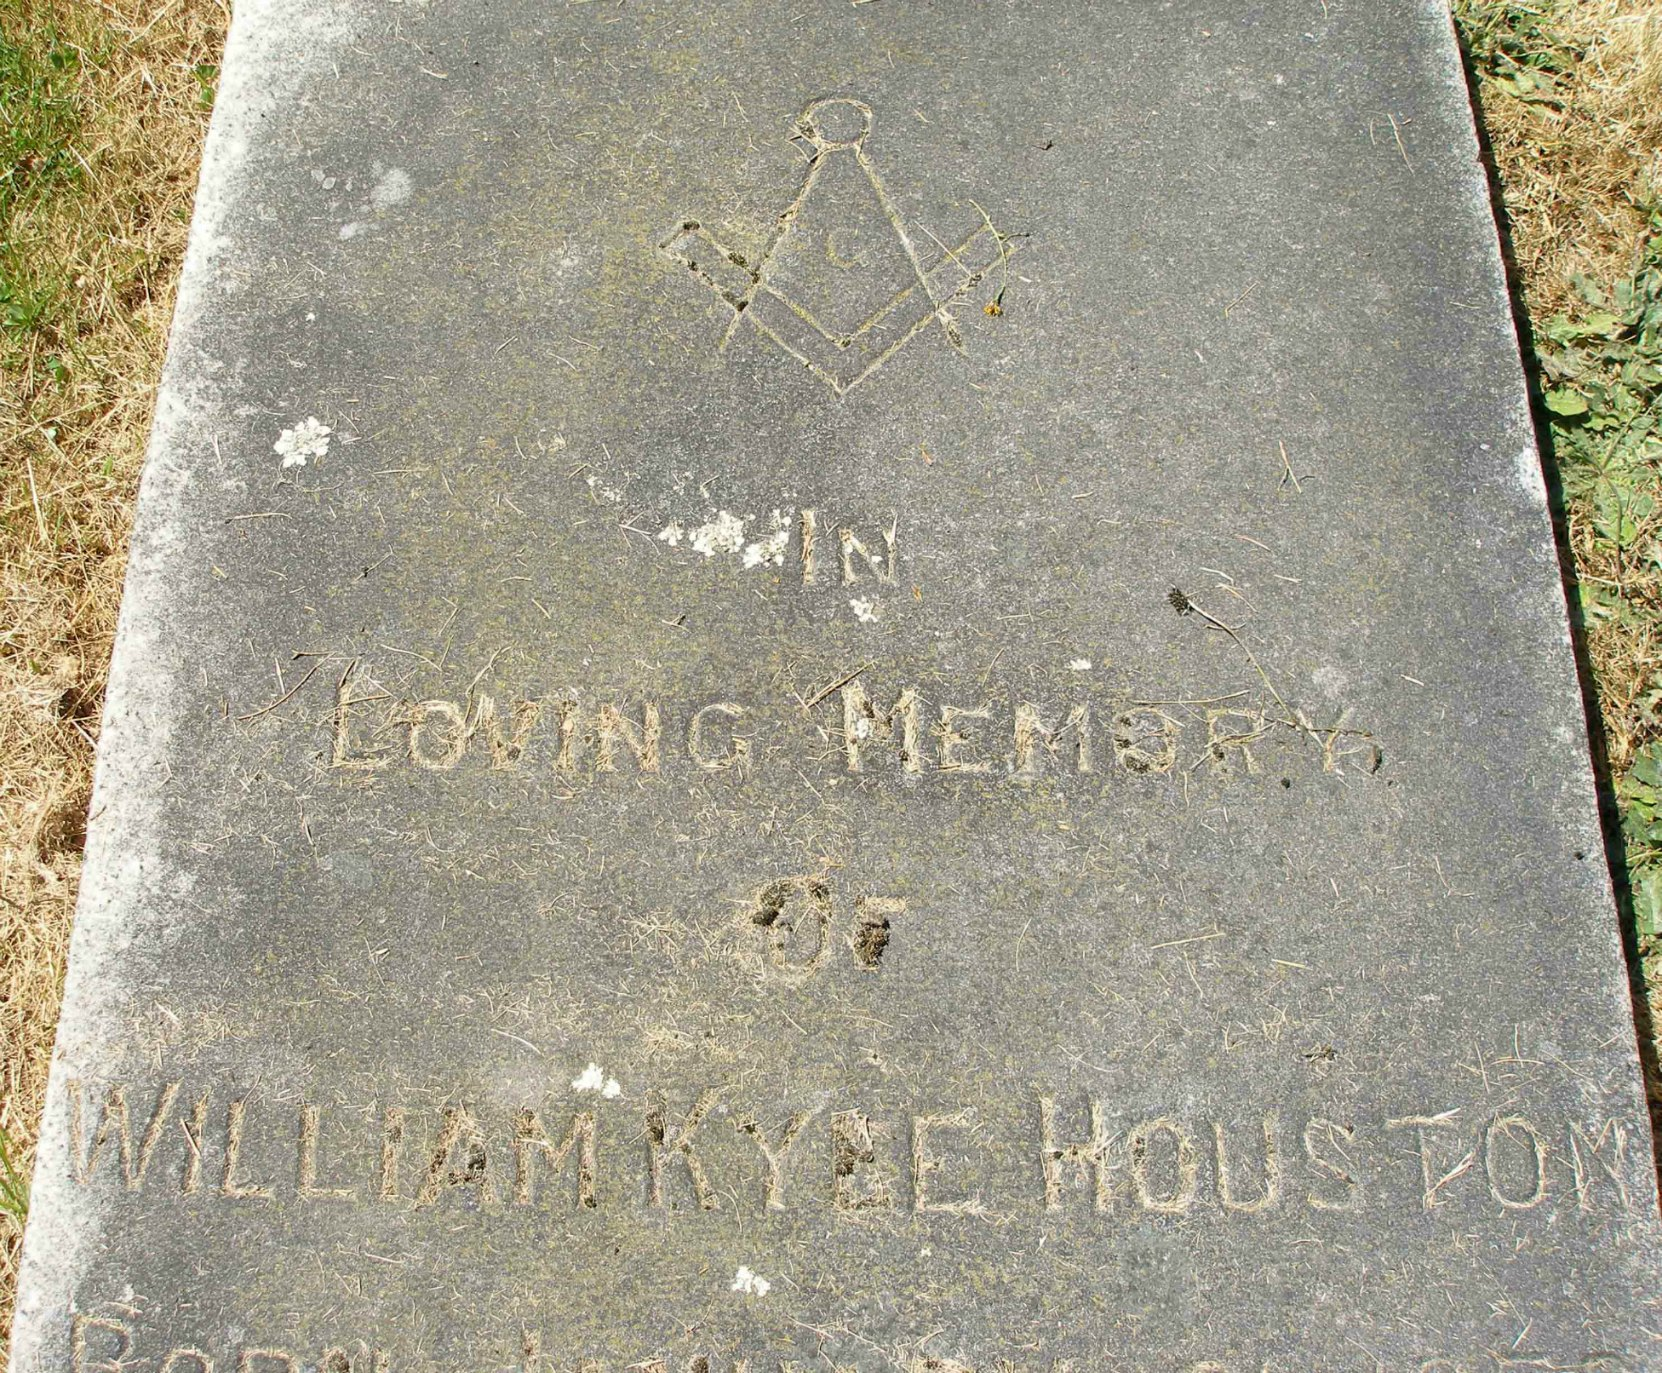 Inscription on William Kyle Houston grave, Ross Bay Cemetery, Victoria, B.C.